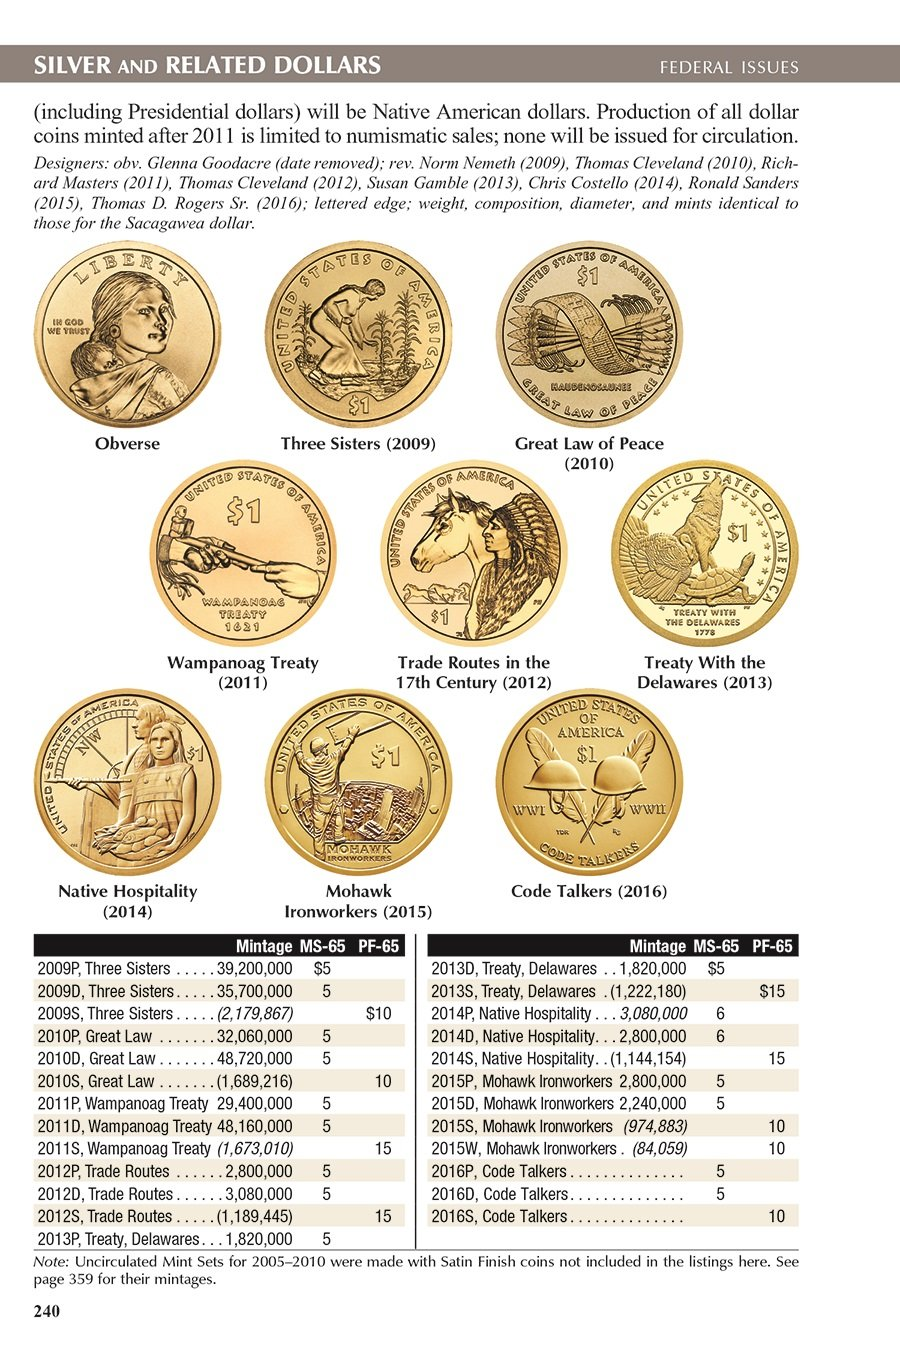 A Guide Book of United States Coins 2017: The Official Red Book, Hardcover  Edition (The Official Red Book A Guide Book): R. S. Yeoman, Kenneth  Bressett: ...